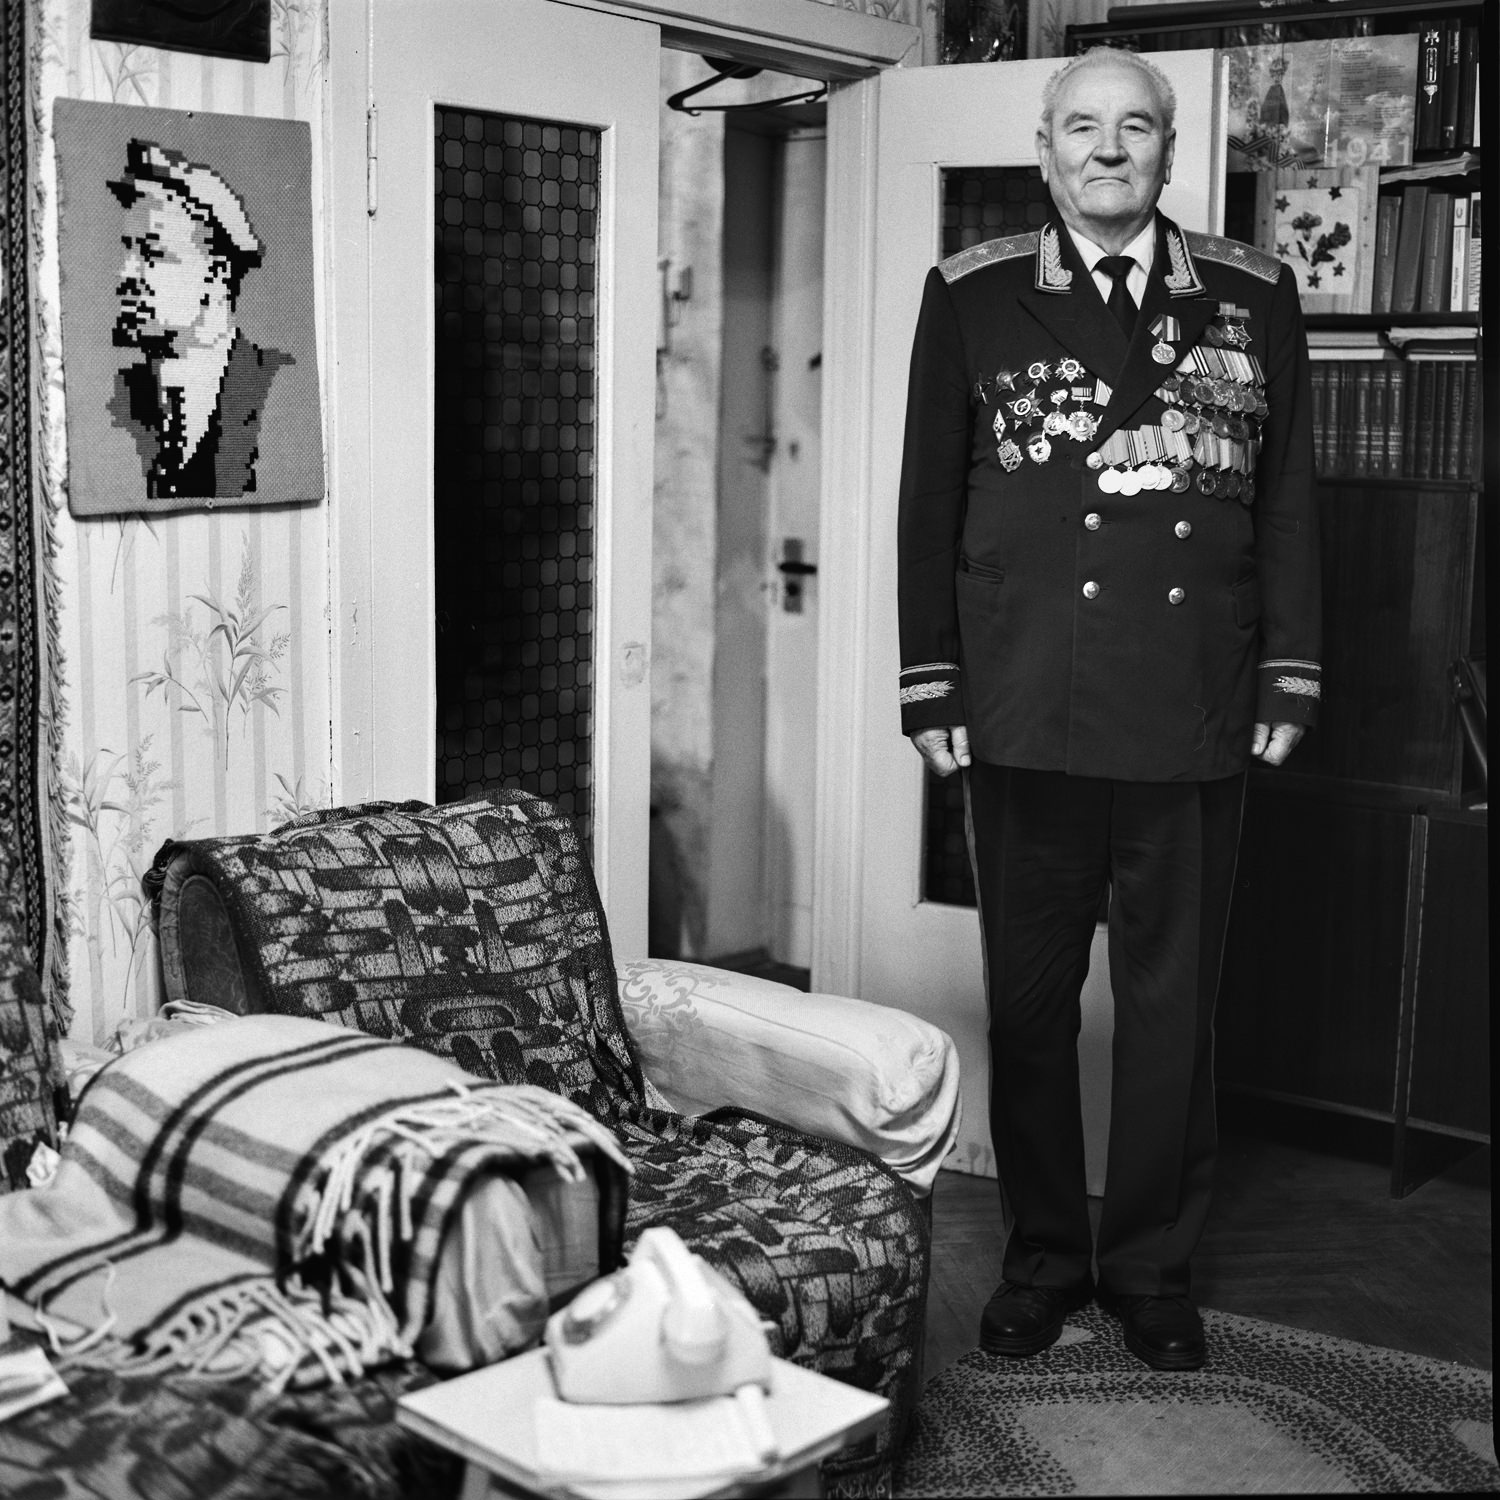 Portrait of the Great Patriotic War veteran in unifrm with medals standing still in his room with hand-made picture of Lenin on wall